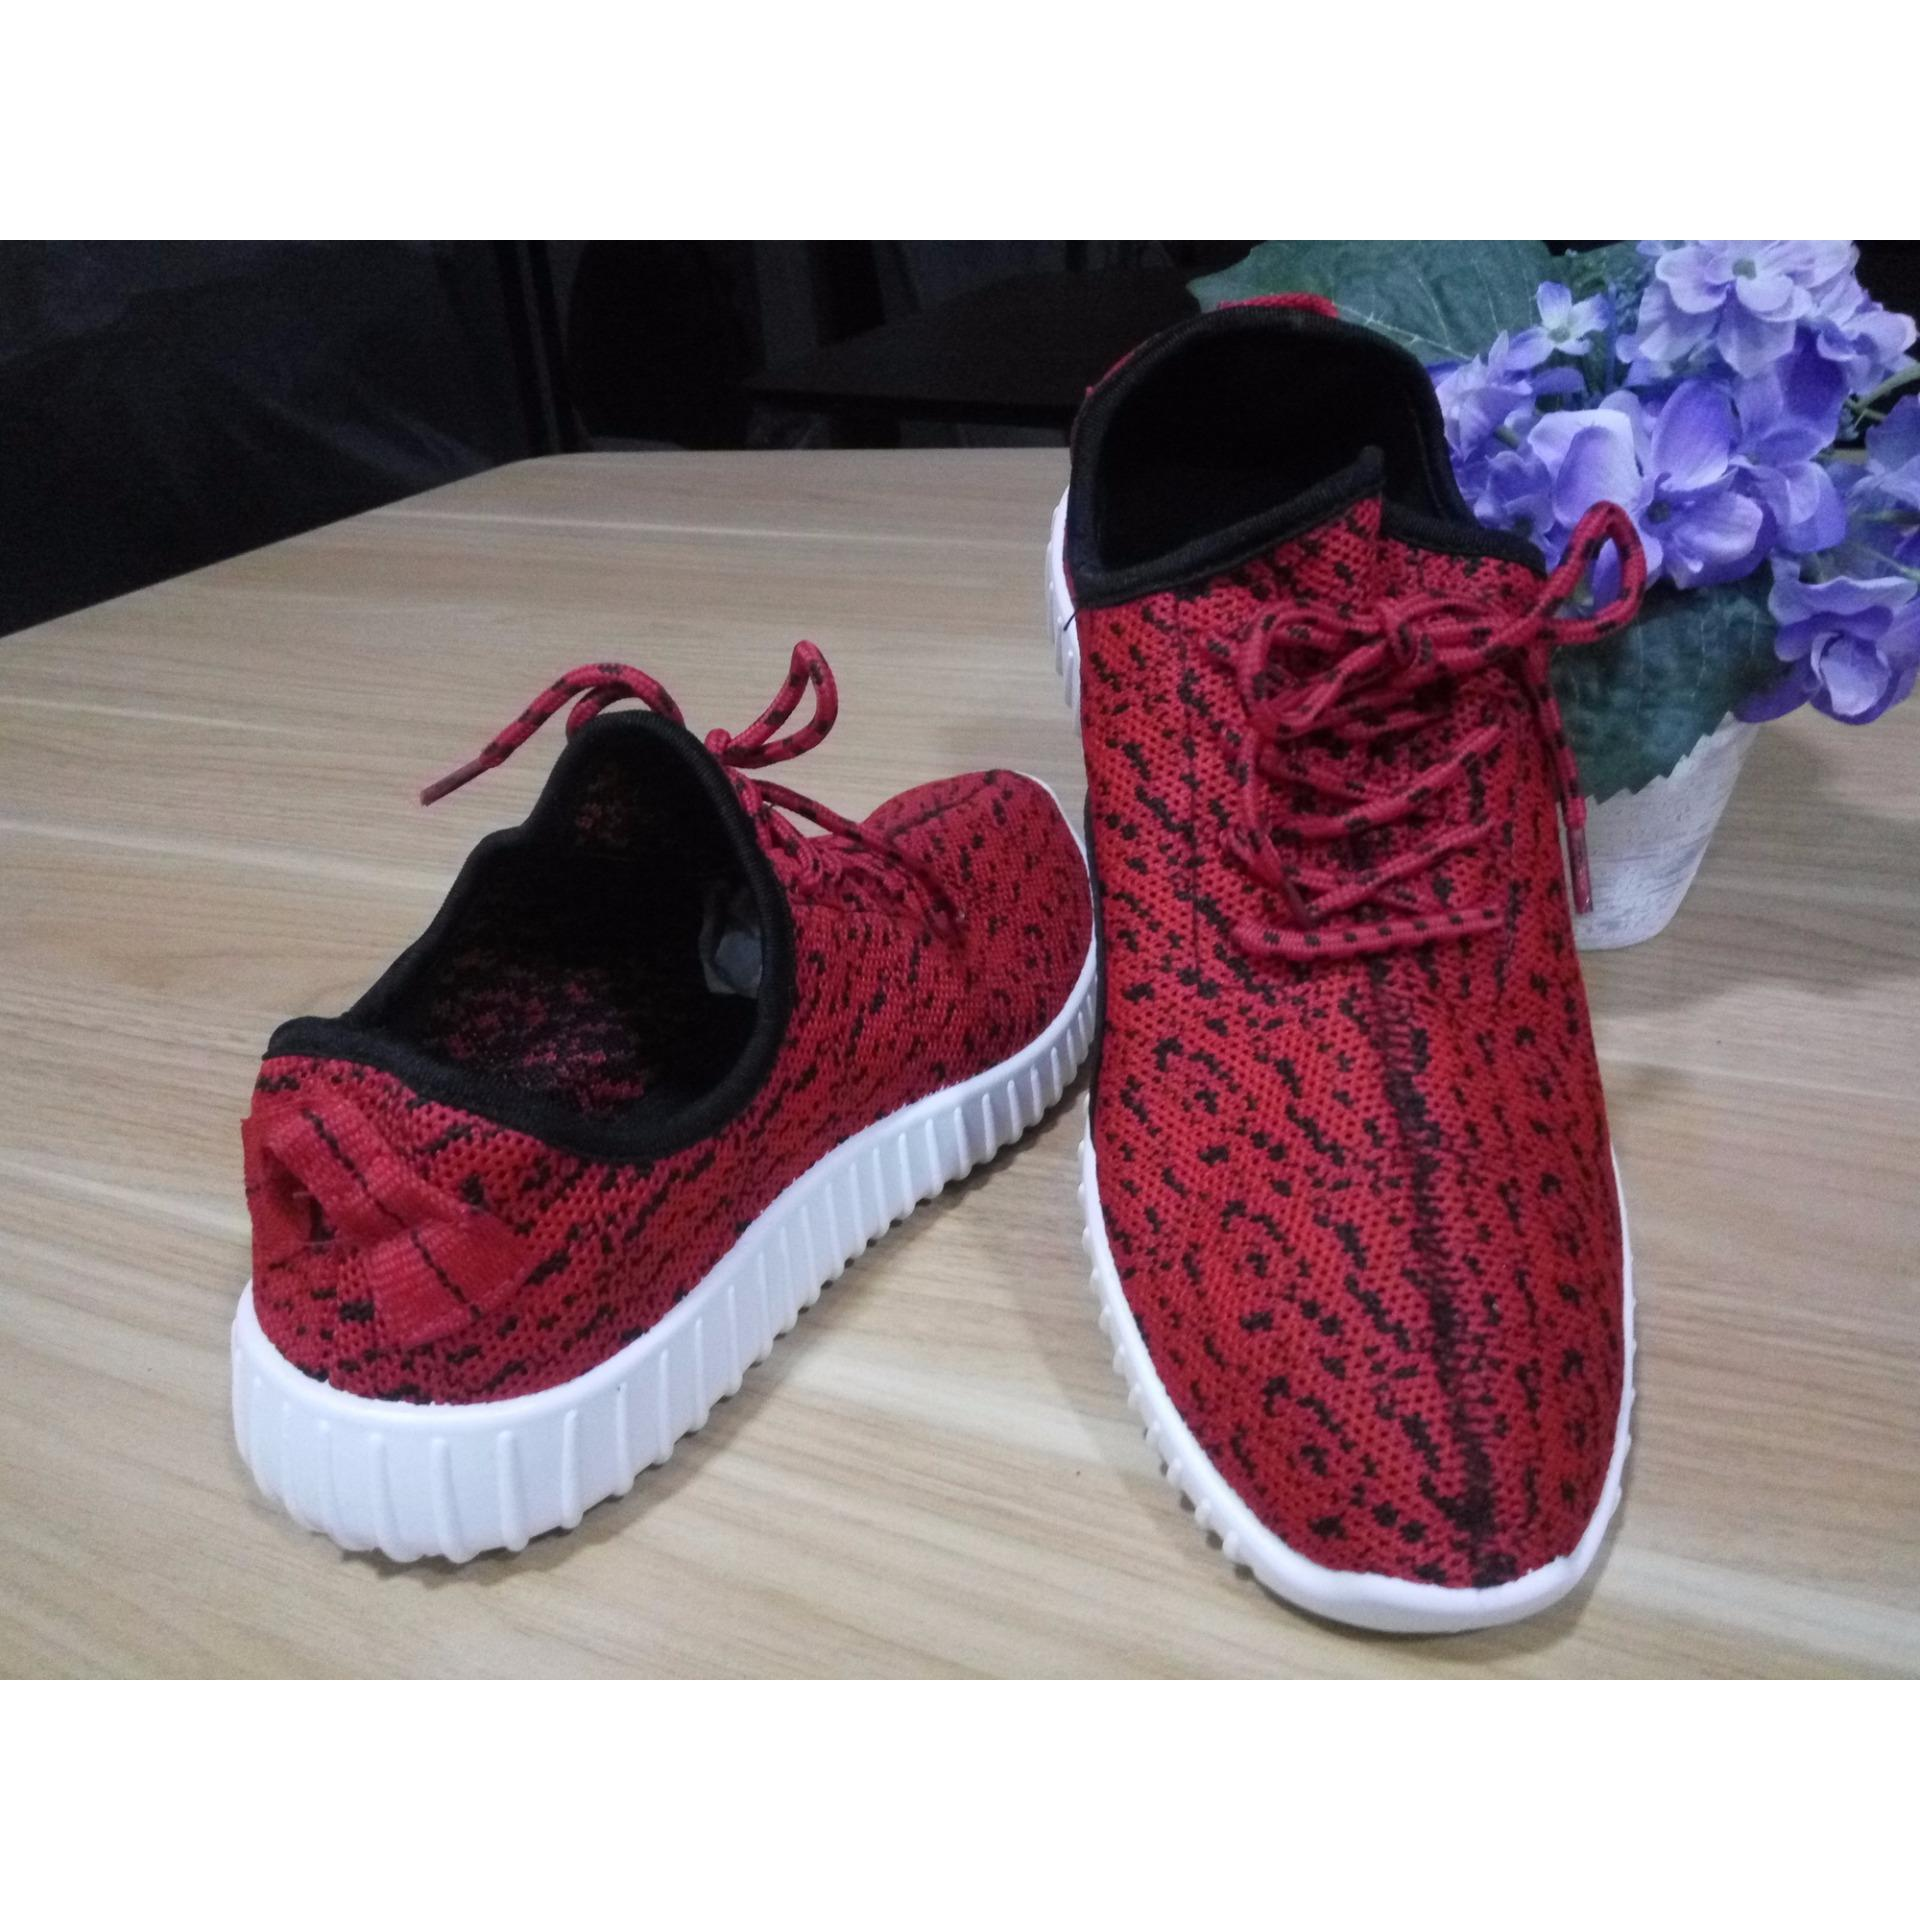 Sneakers Import Korea -270 Red